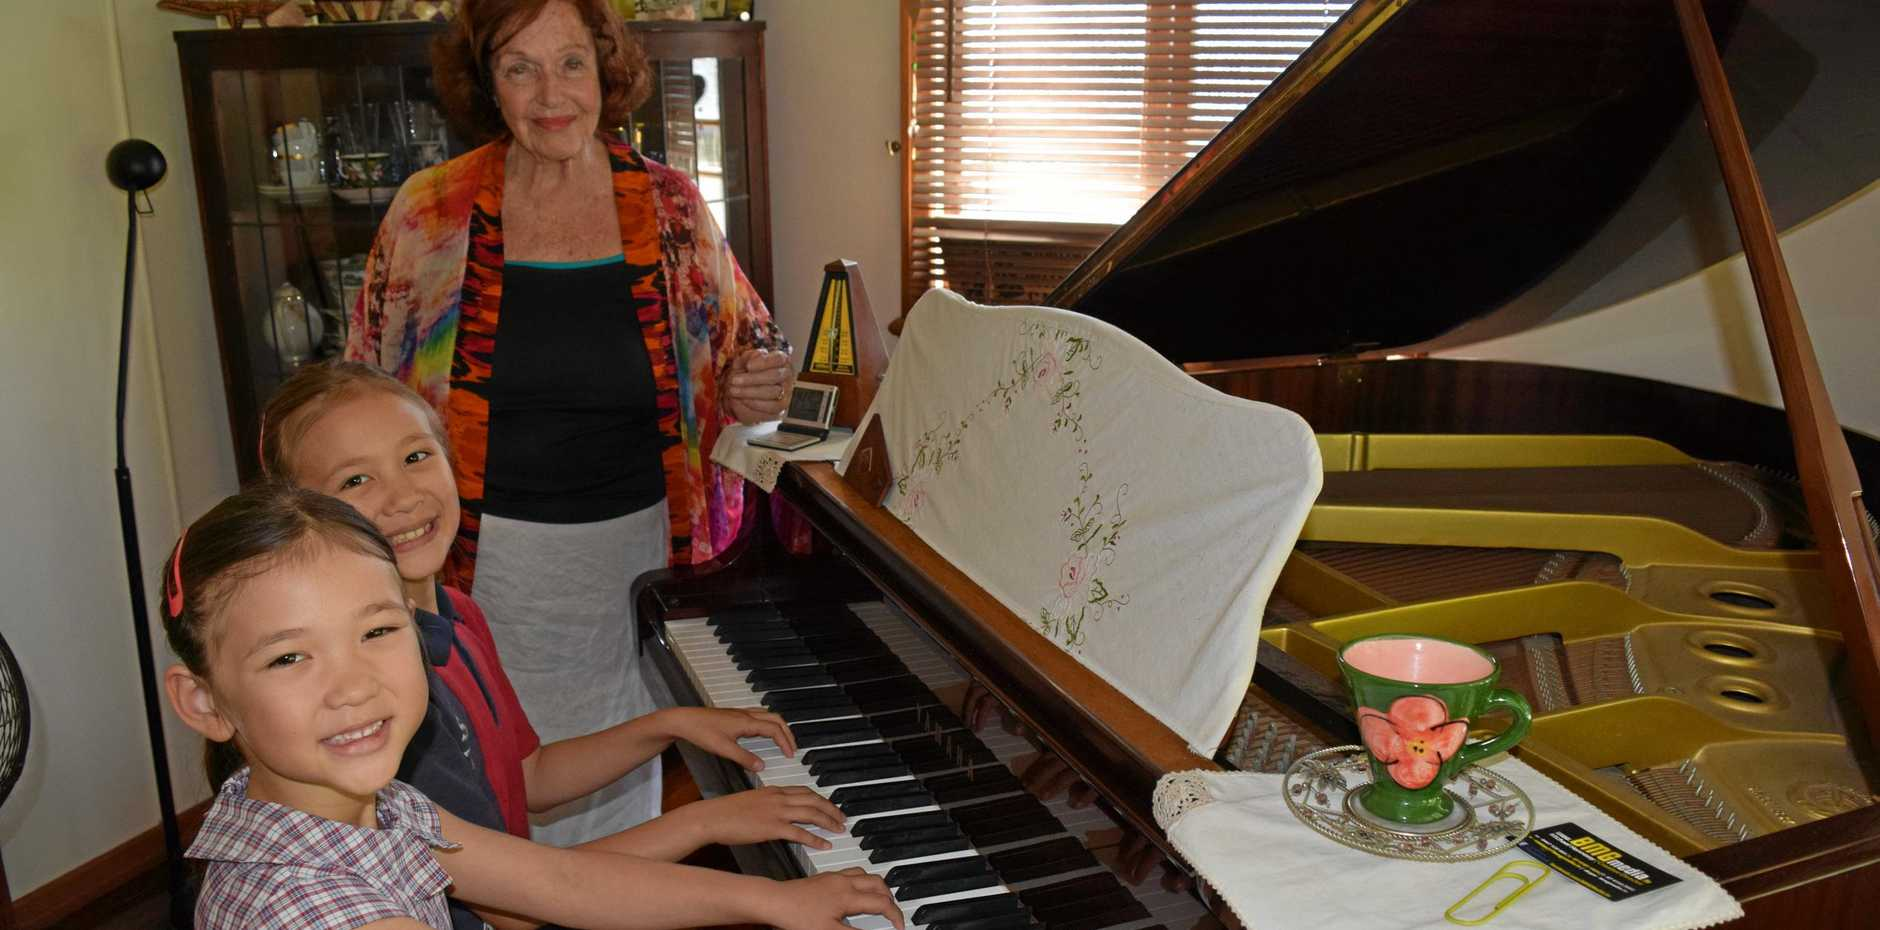 Piano teacher Elizabeth Smith is proud her pupils Laura, 5 (left) and Emma Williams, 7 have been accepted into the Queensland Conservatorium Griffith University.